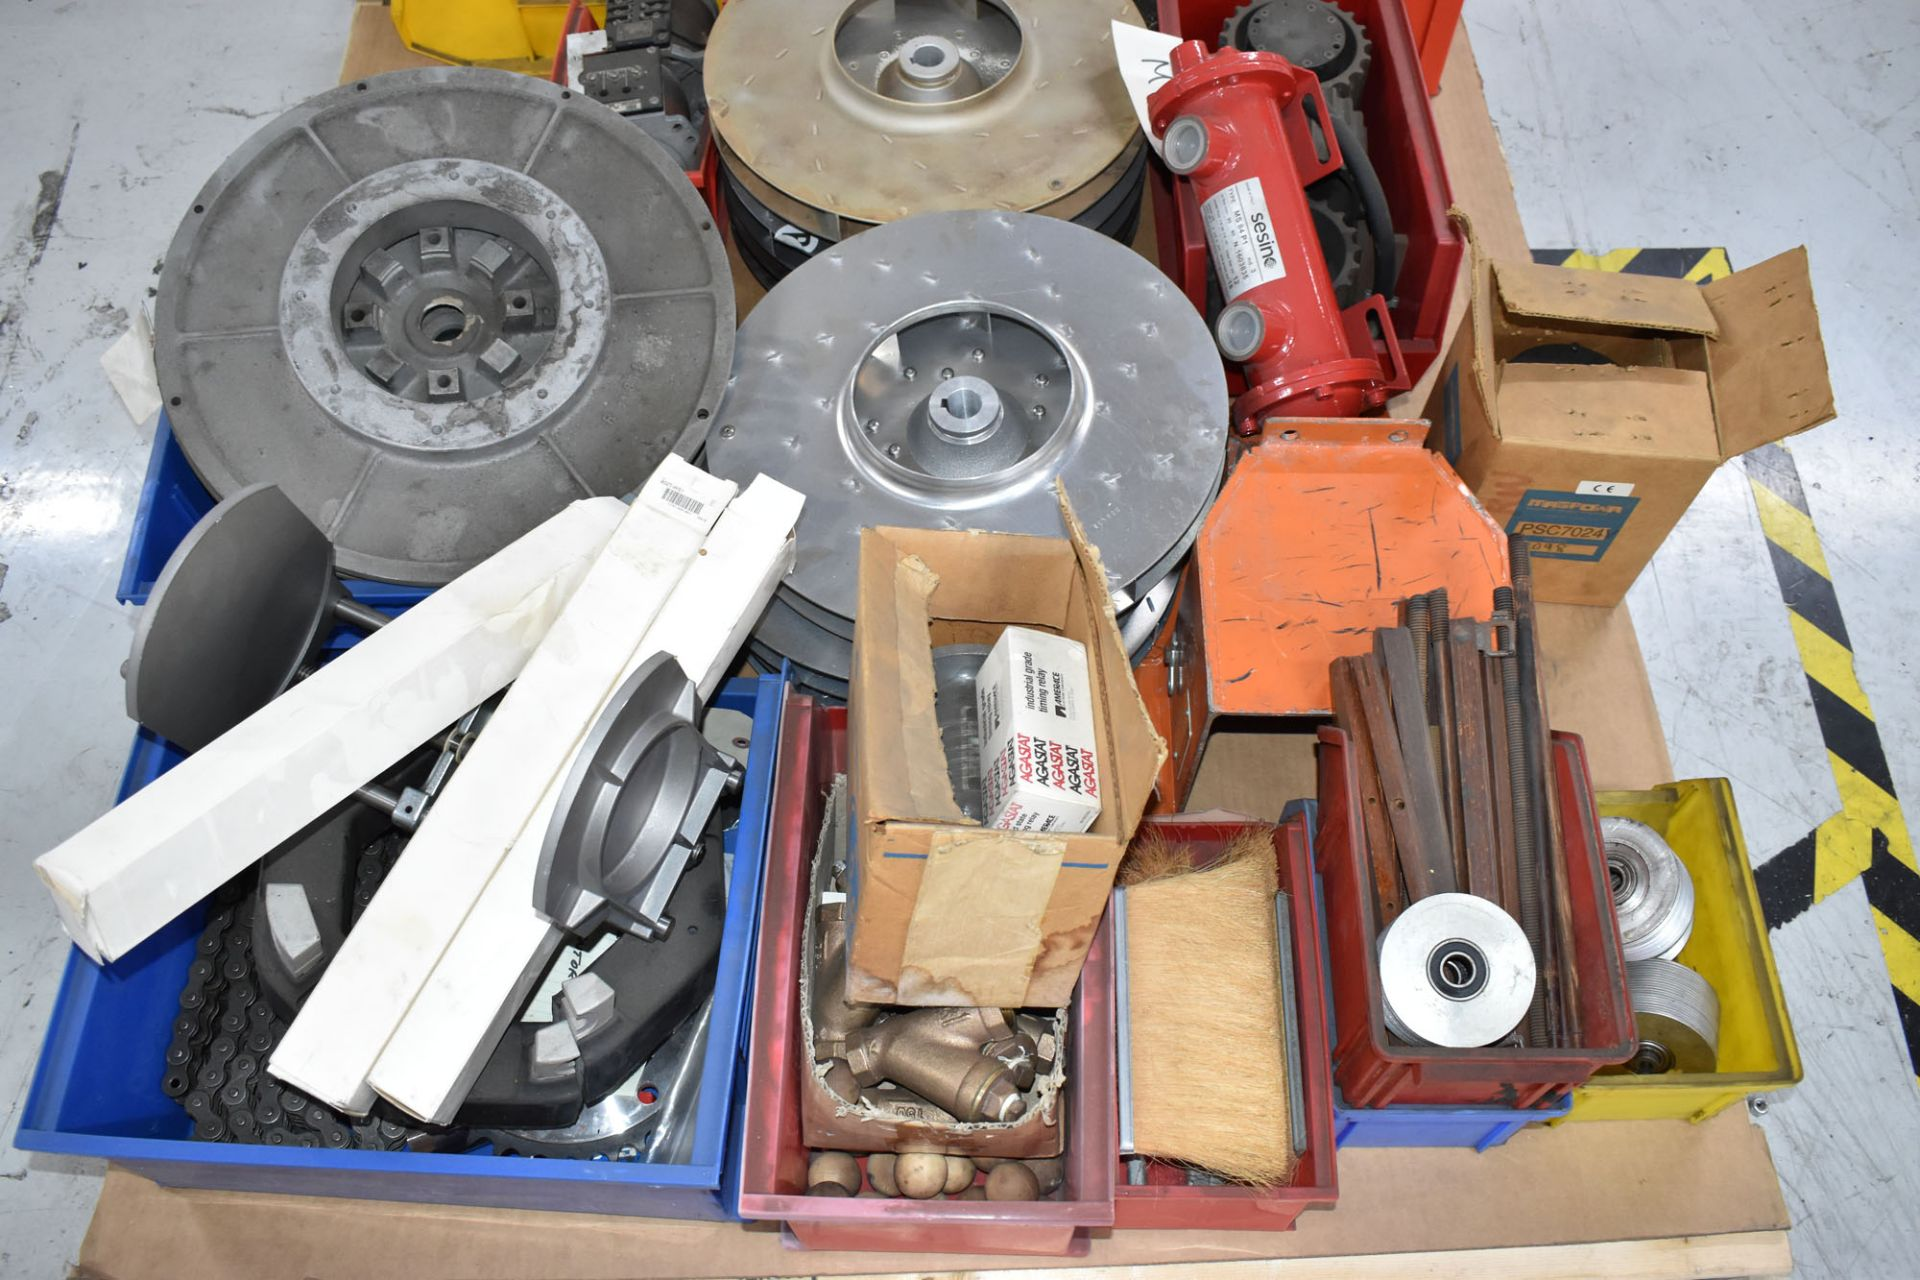 LOT/ PALLET WITH CONTENTS CONSISTING OF REELS, CHAIN, AND EXTRUDER LINE COMPONENTS - Image 2 of 3